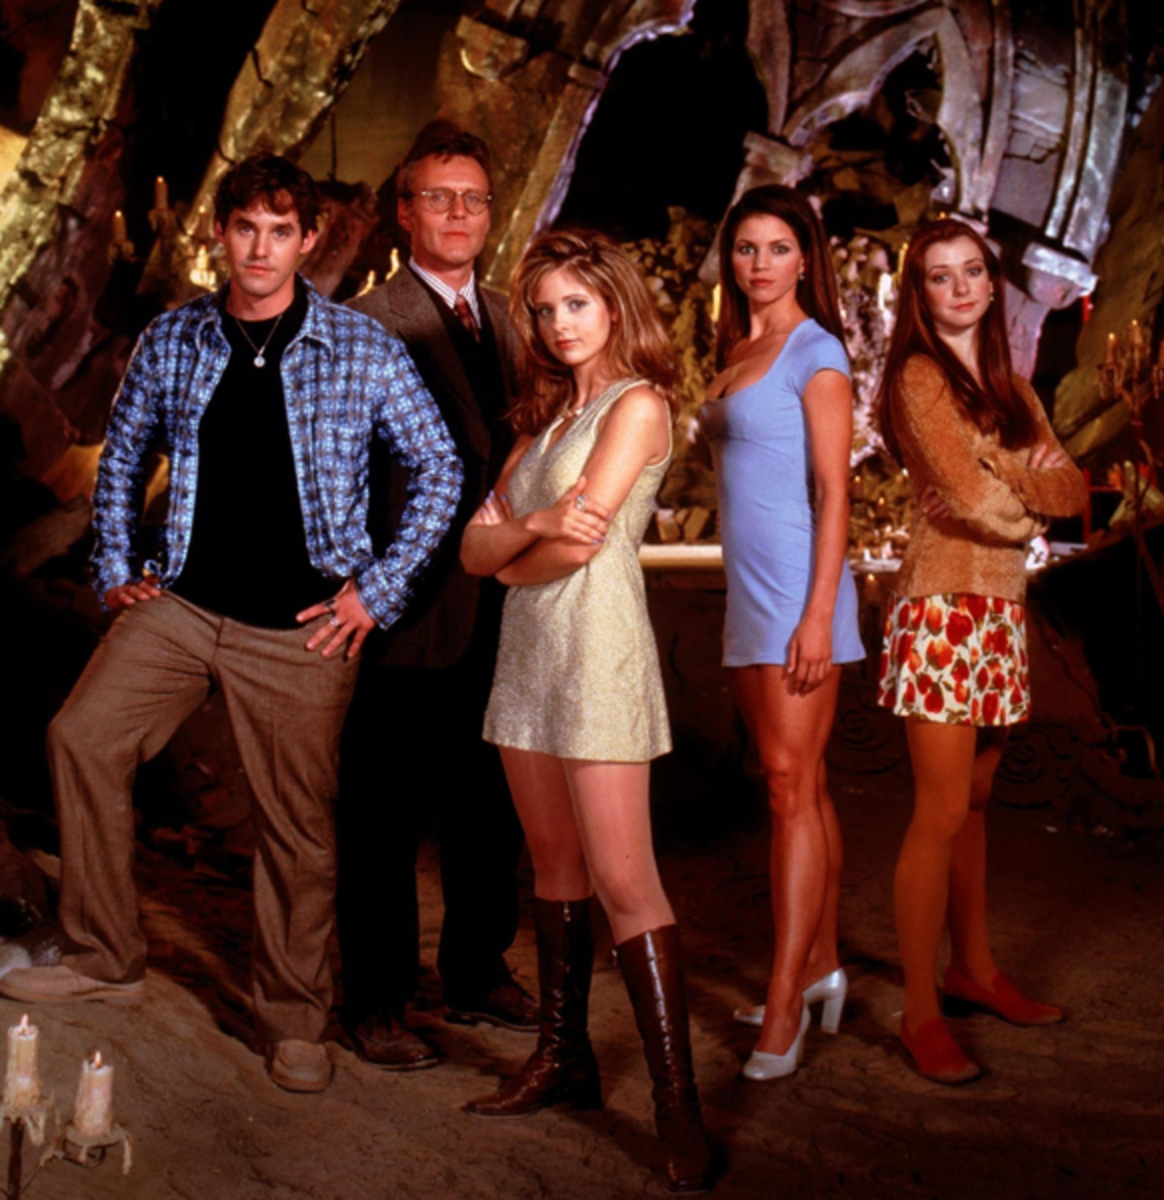 Where is the Buffy the Vampire Slayer Cast at now?  Here they are in 1997 when the show premiered!